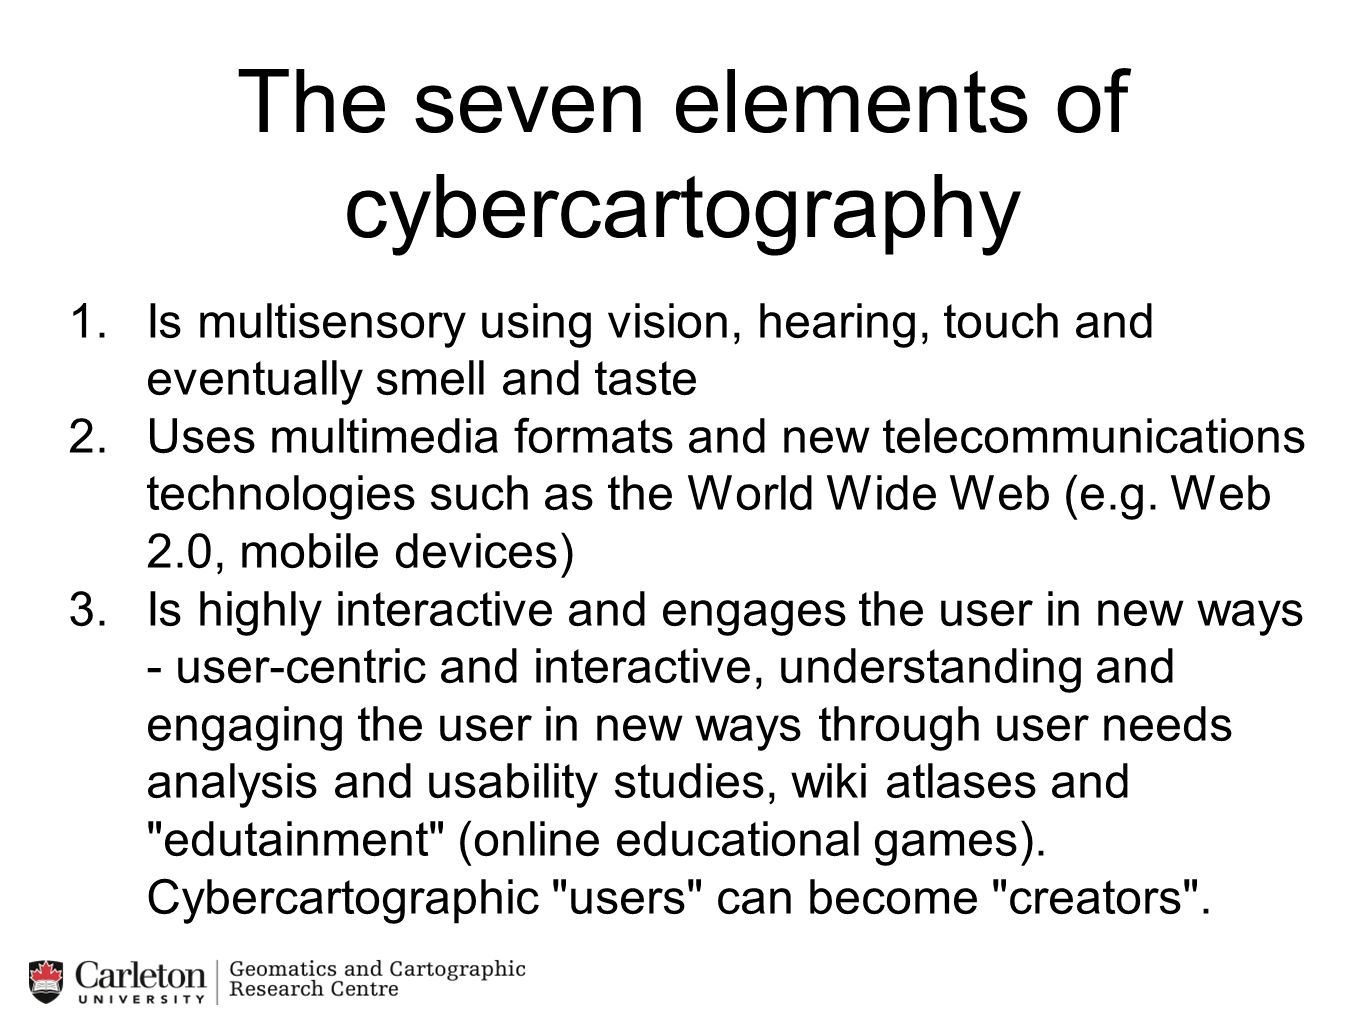 The seven elements of cybercartography